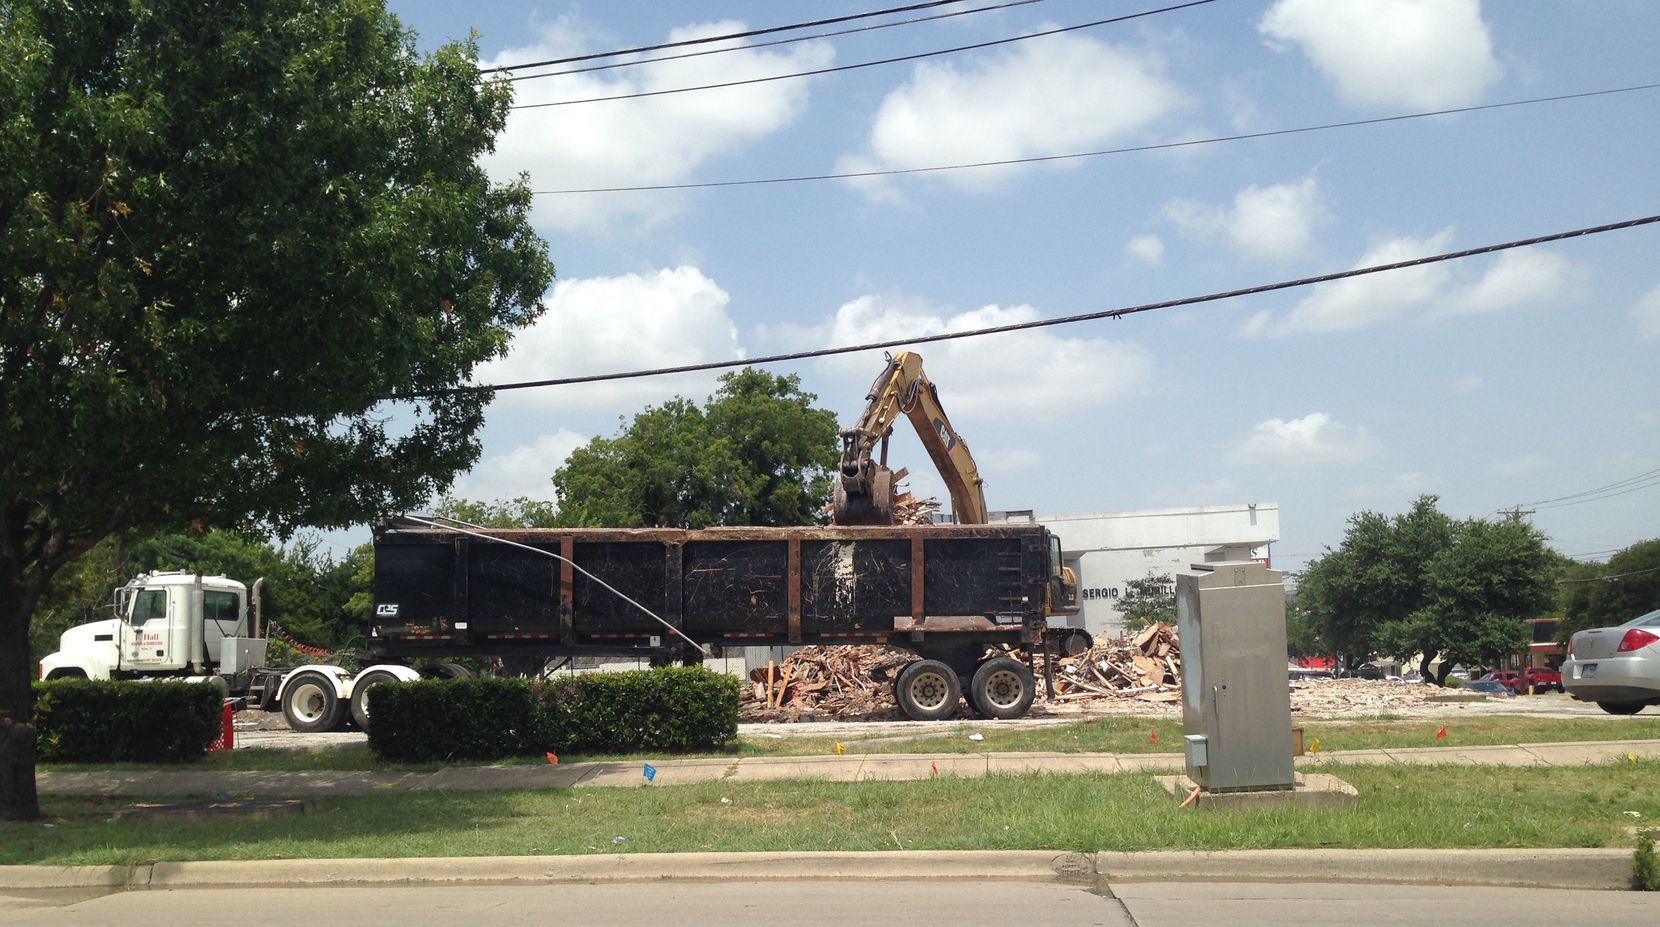 Demolition crews recently knocked down a building on the corner of Maple and Wycliff, one of the properties sold to developers.